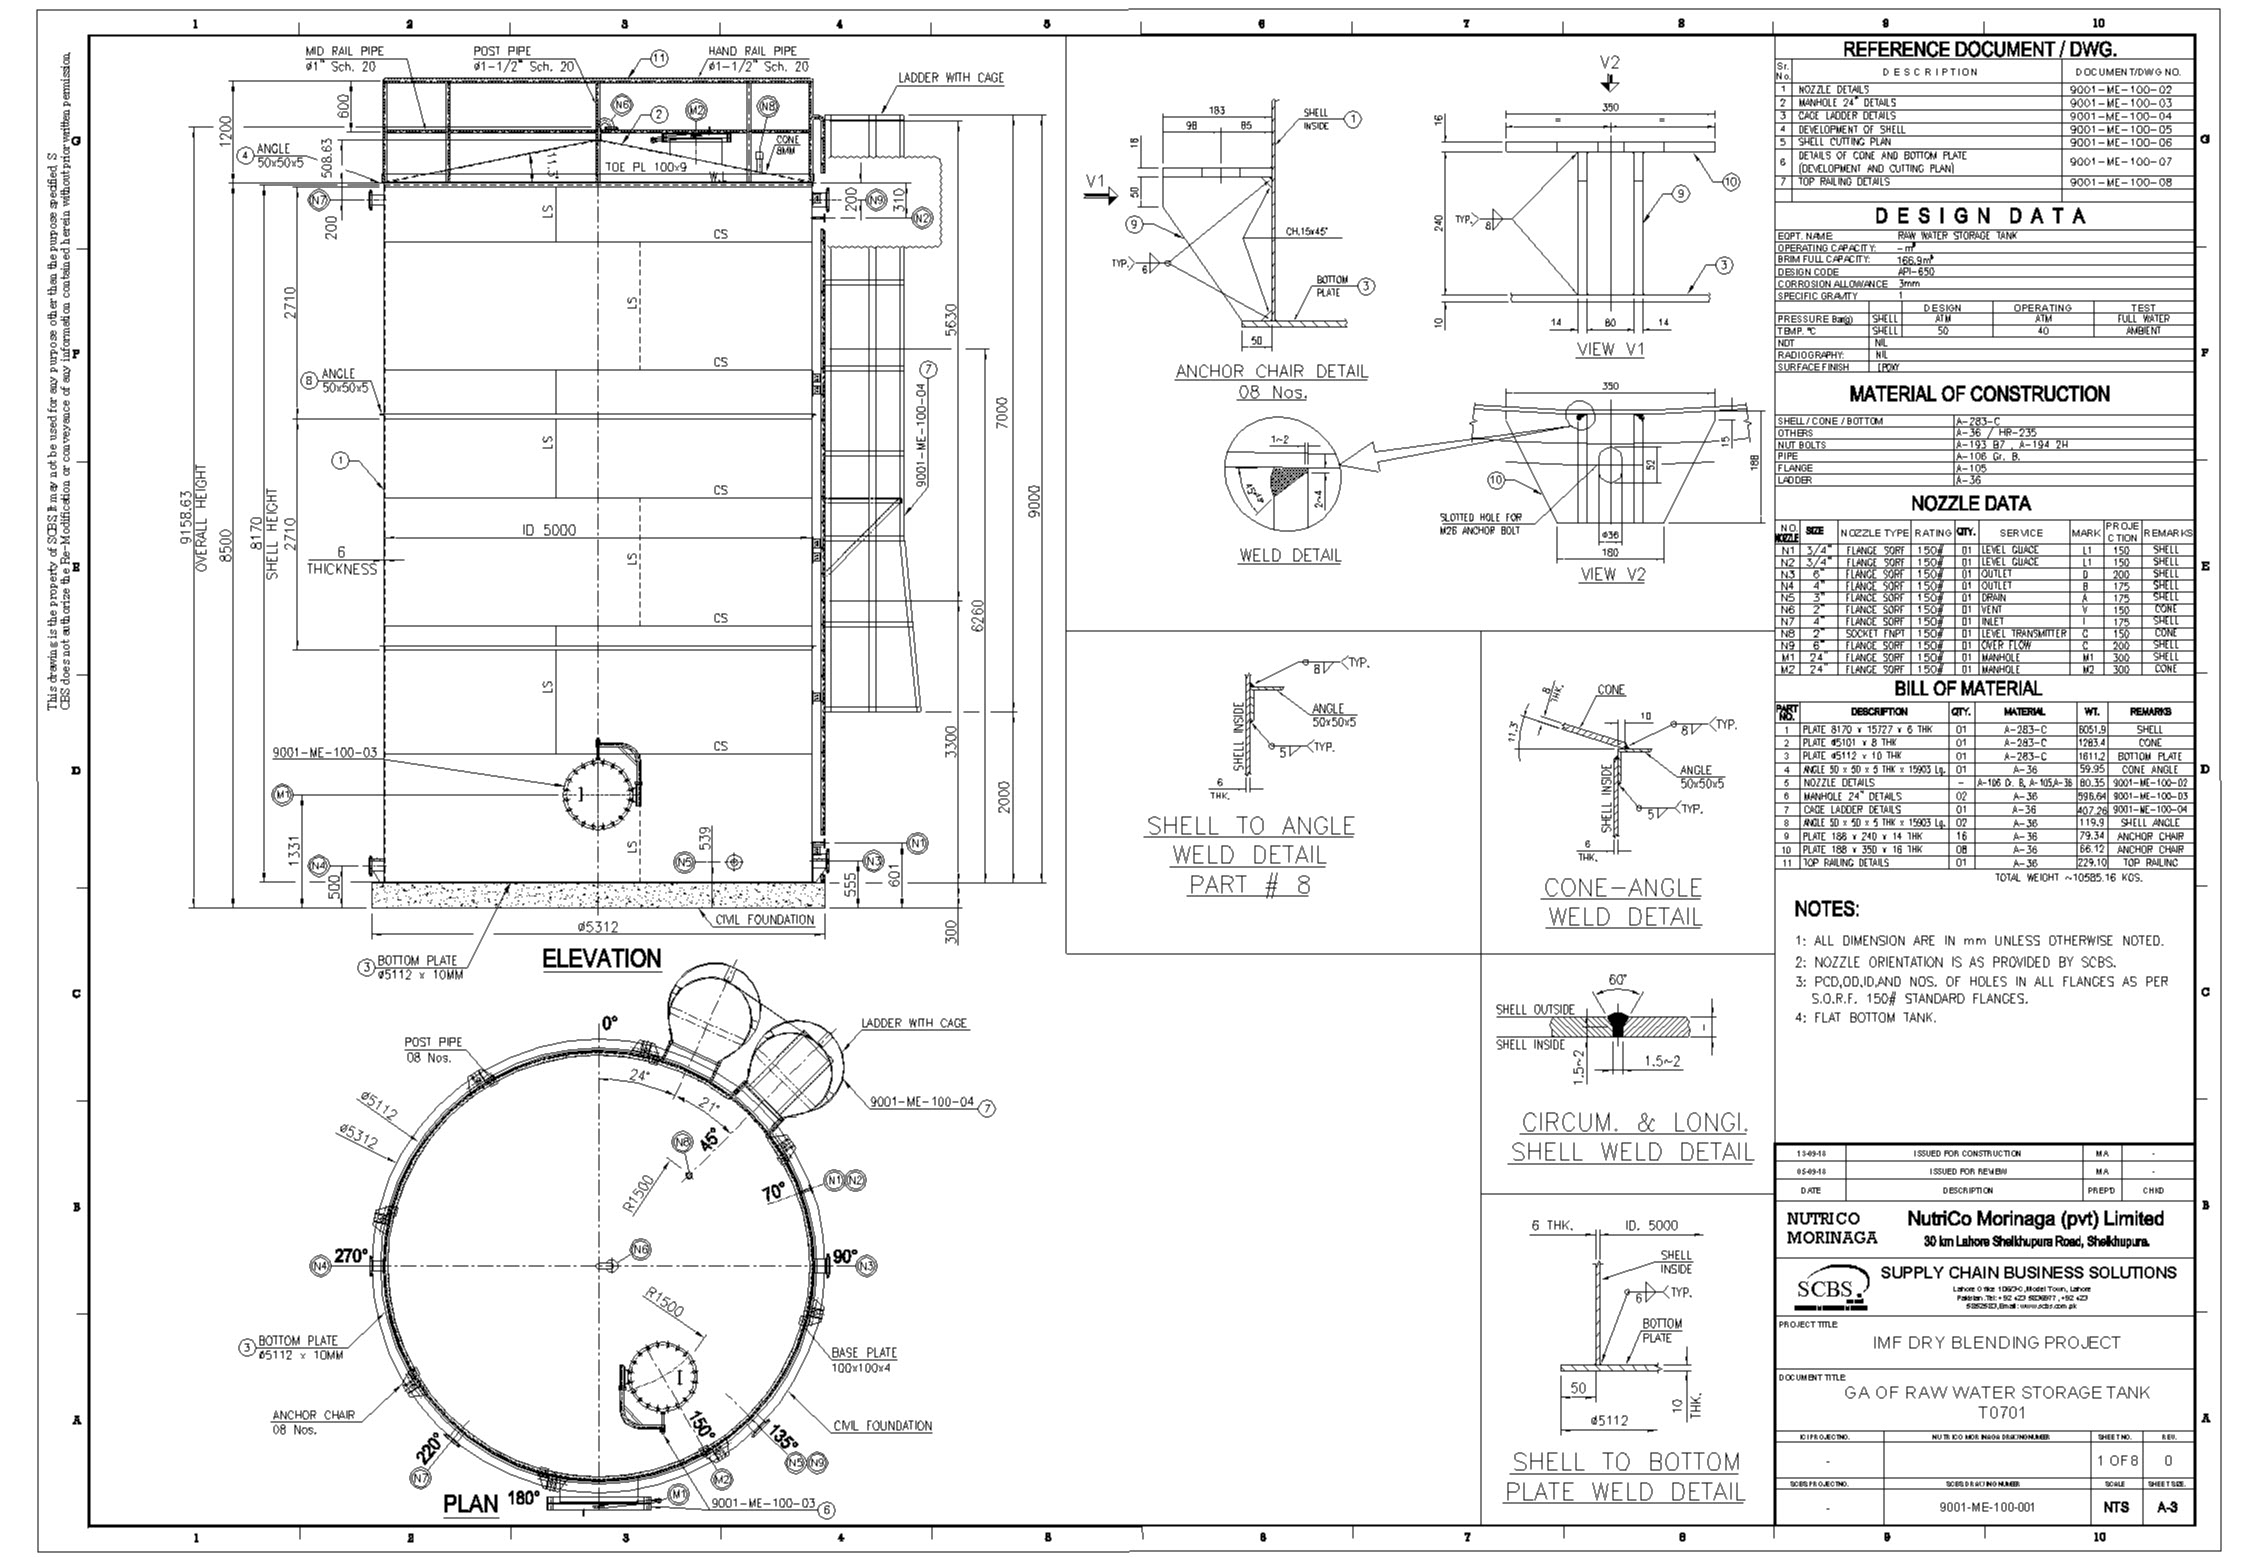 Project and design products using Autocad, Plant 3d